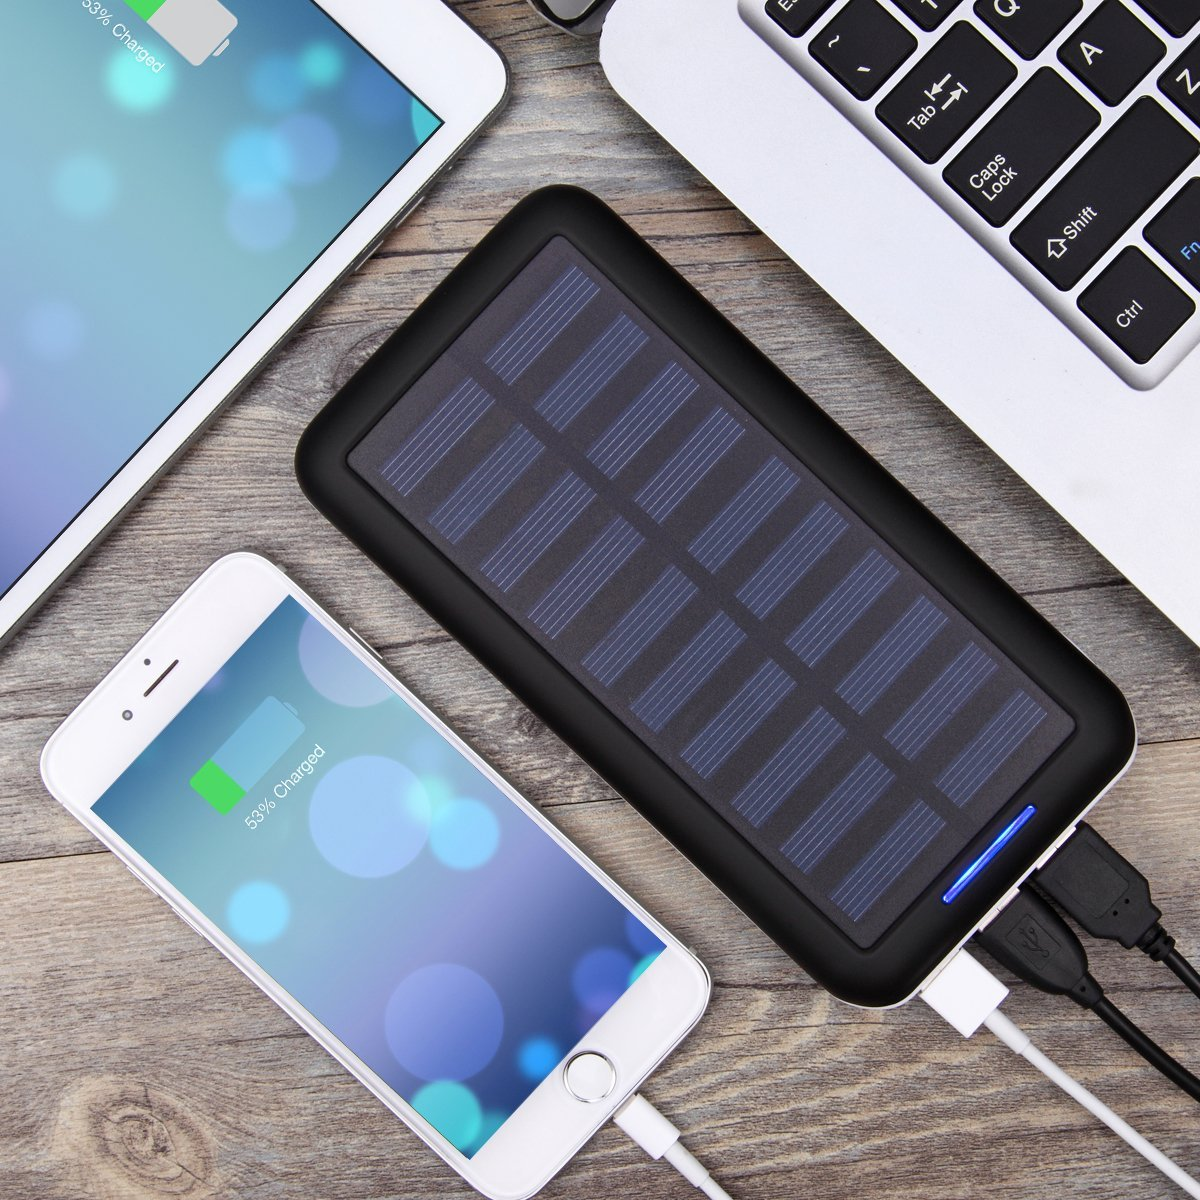 Portable Chargers Kedron 22000 Solar Charger 22000mah External Battery Pack 2 Port Input 3 Usb Output Power Banks Or Iphone Ipad And Samsung Galaxy